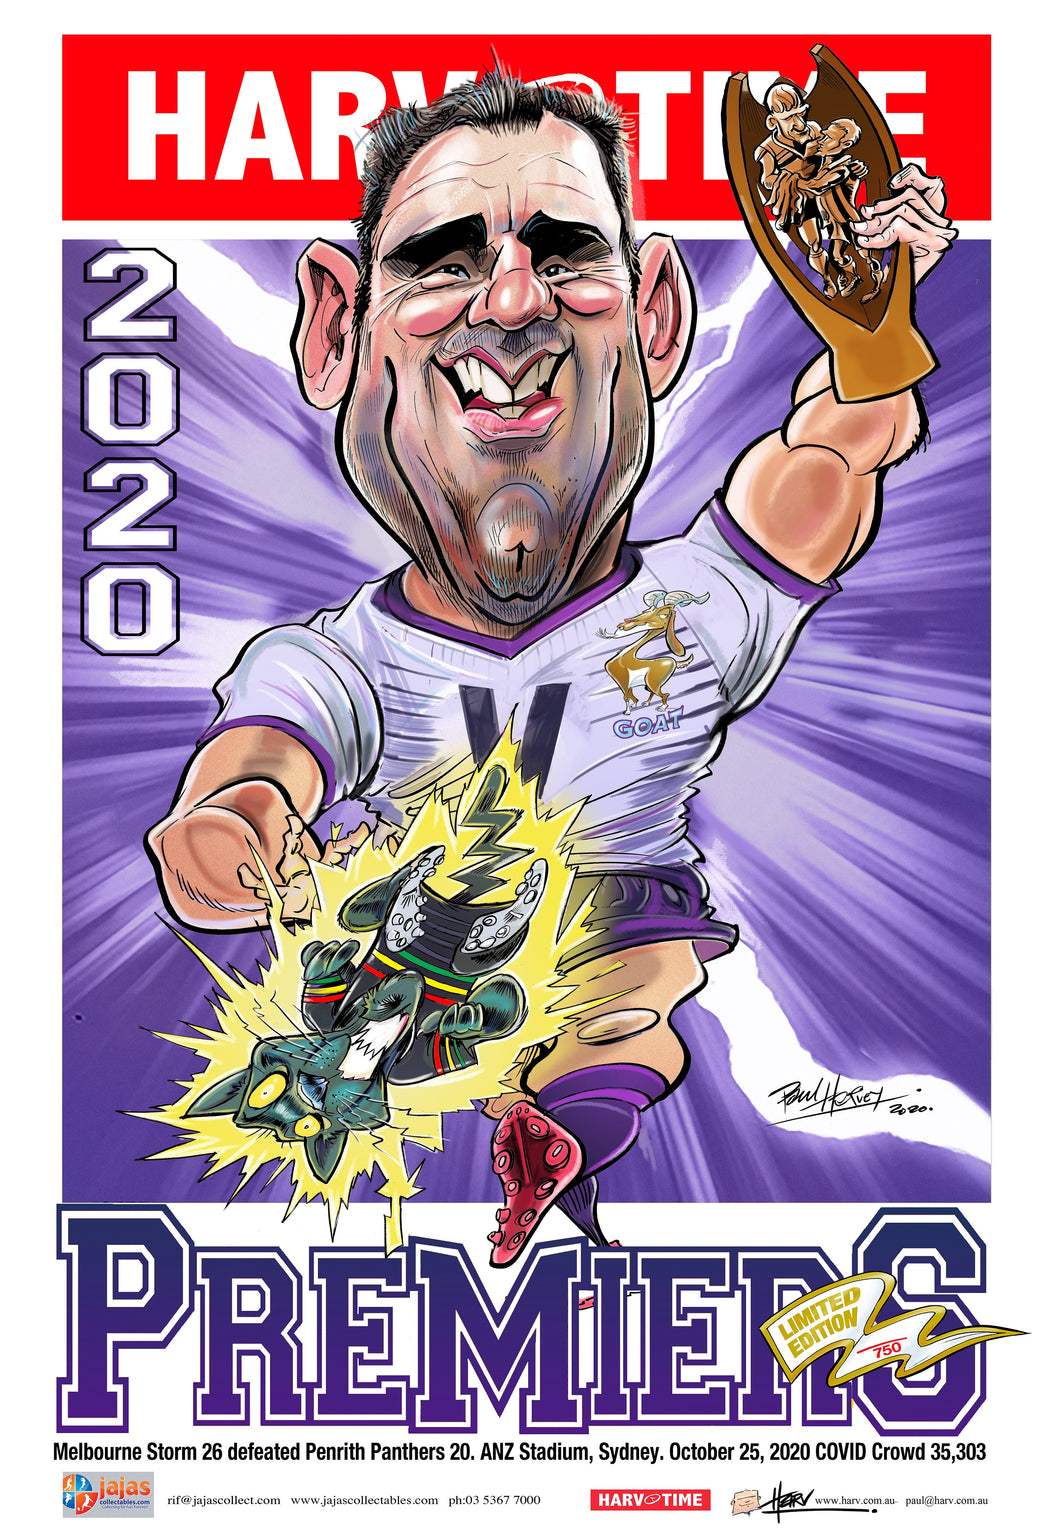 Melbourne Storm 2020 NRL Premiers Harv Time Poster, White Jersey